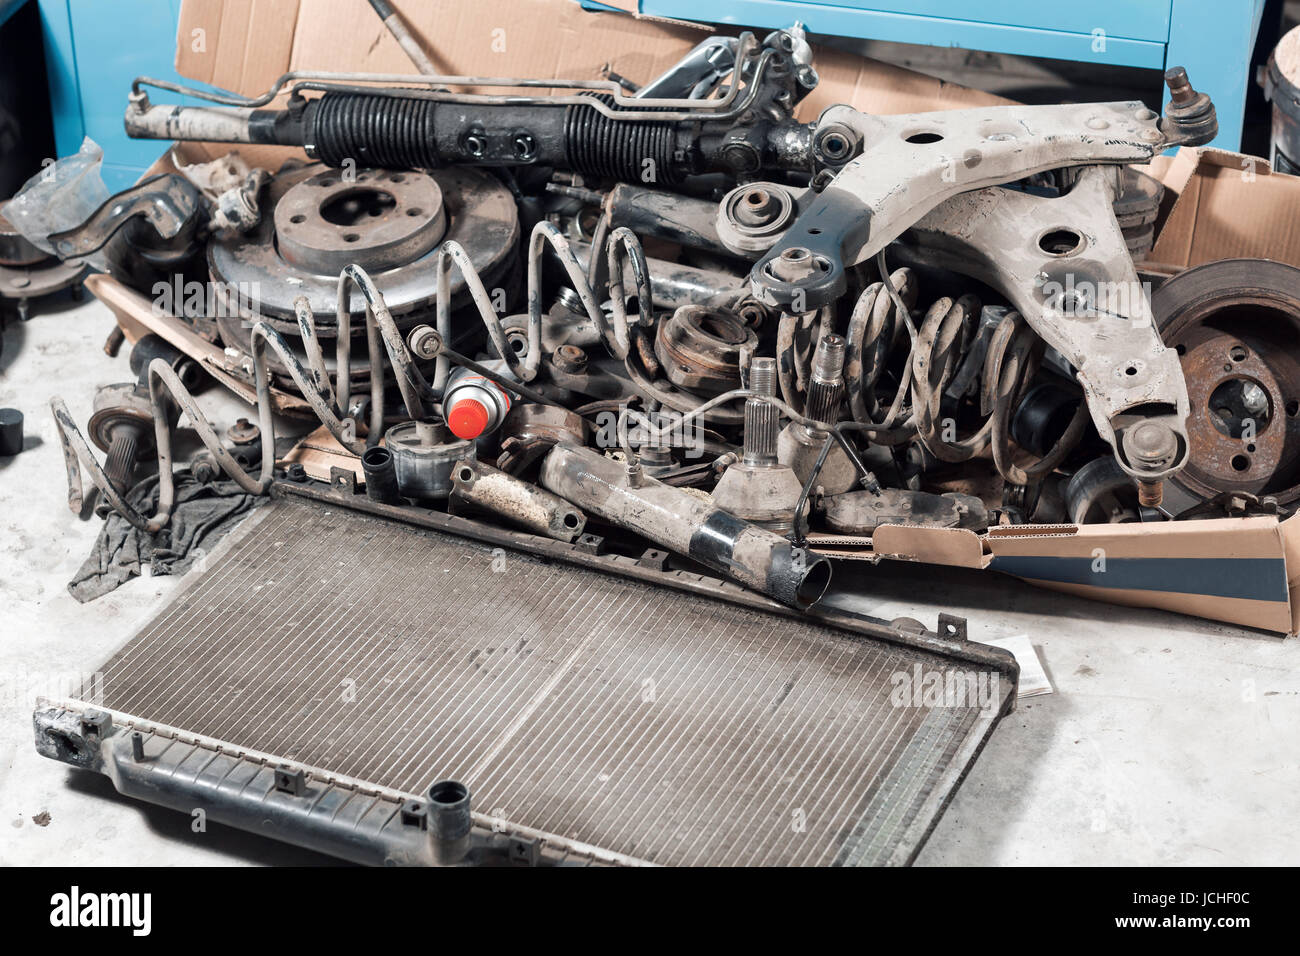 Auto Parts Market Stockfotos & Auto Parts Market Bilder - Alamy